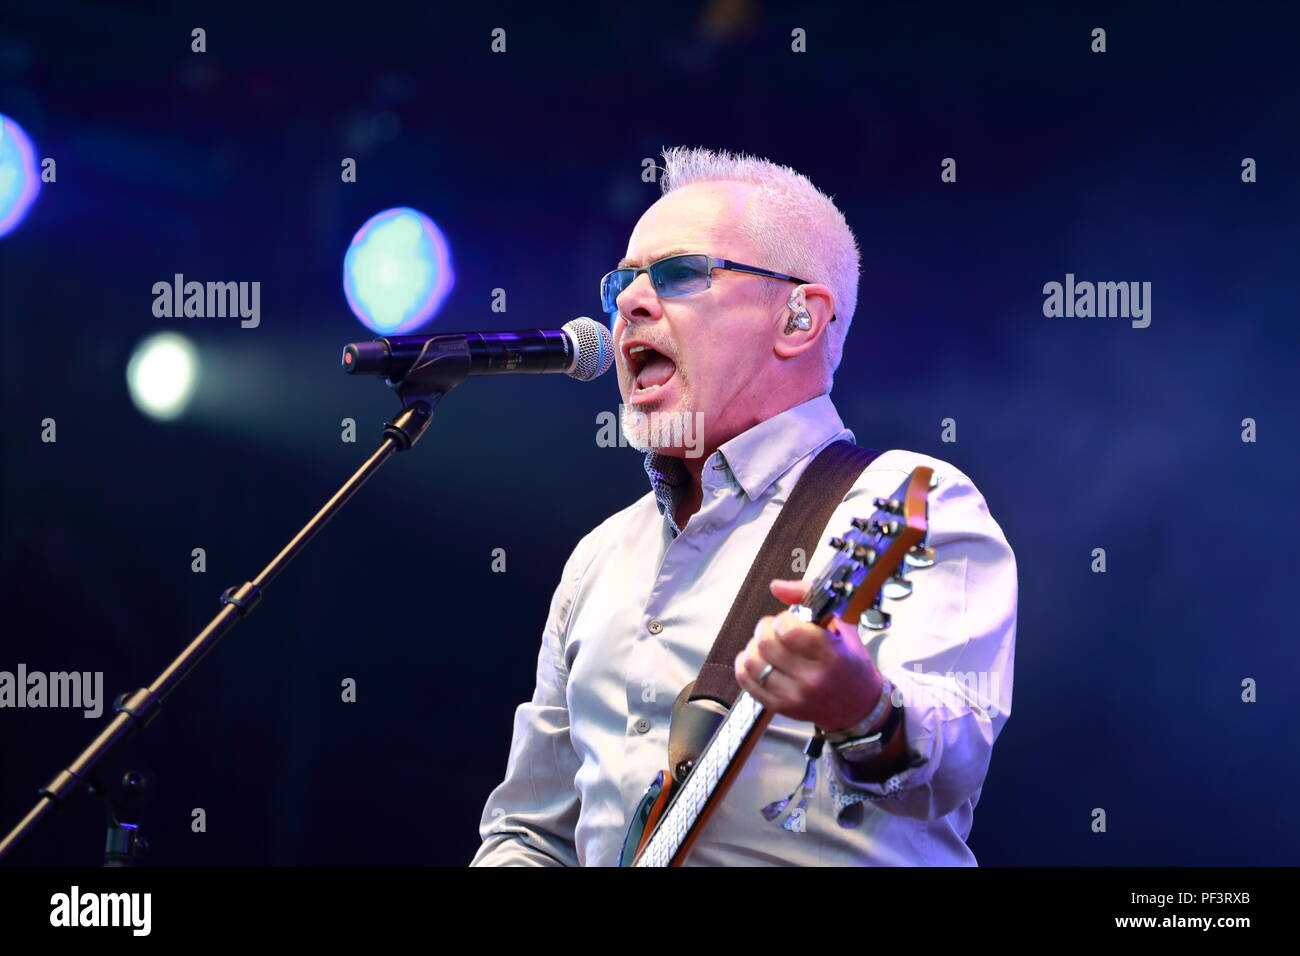 Nik Kershaw at the Rewind Festival South 2018 at Henley-on-Thames, UK - Stock Image